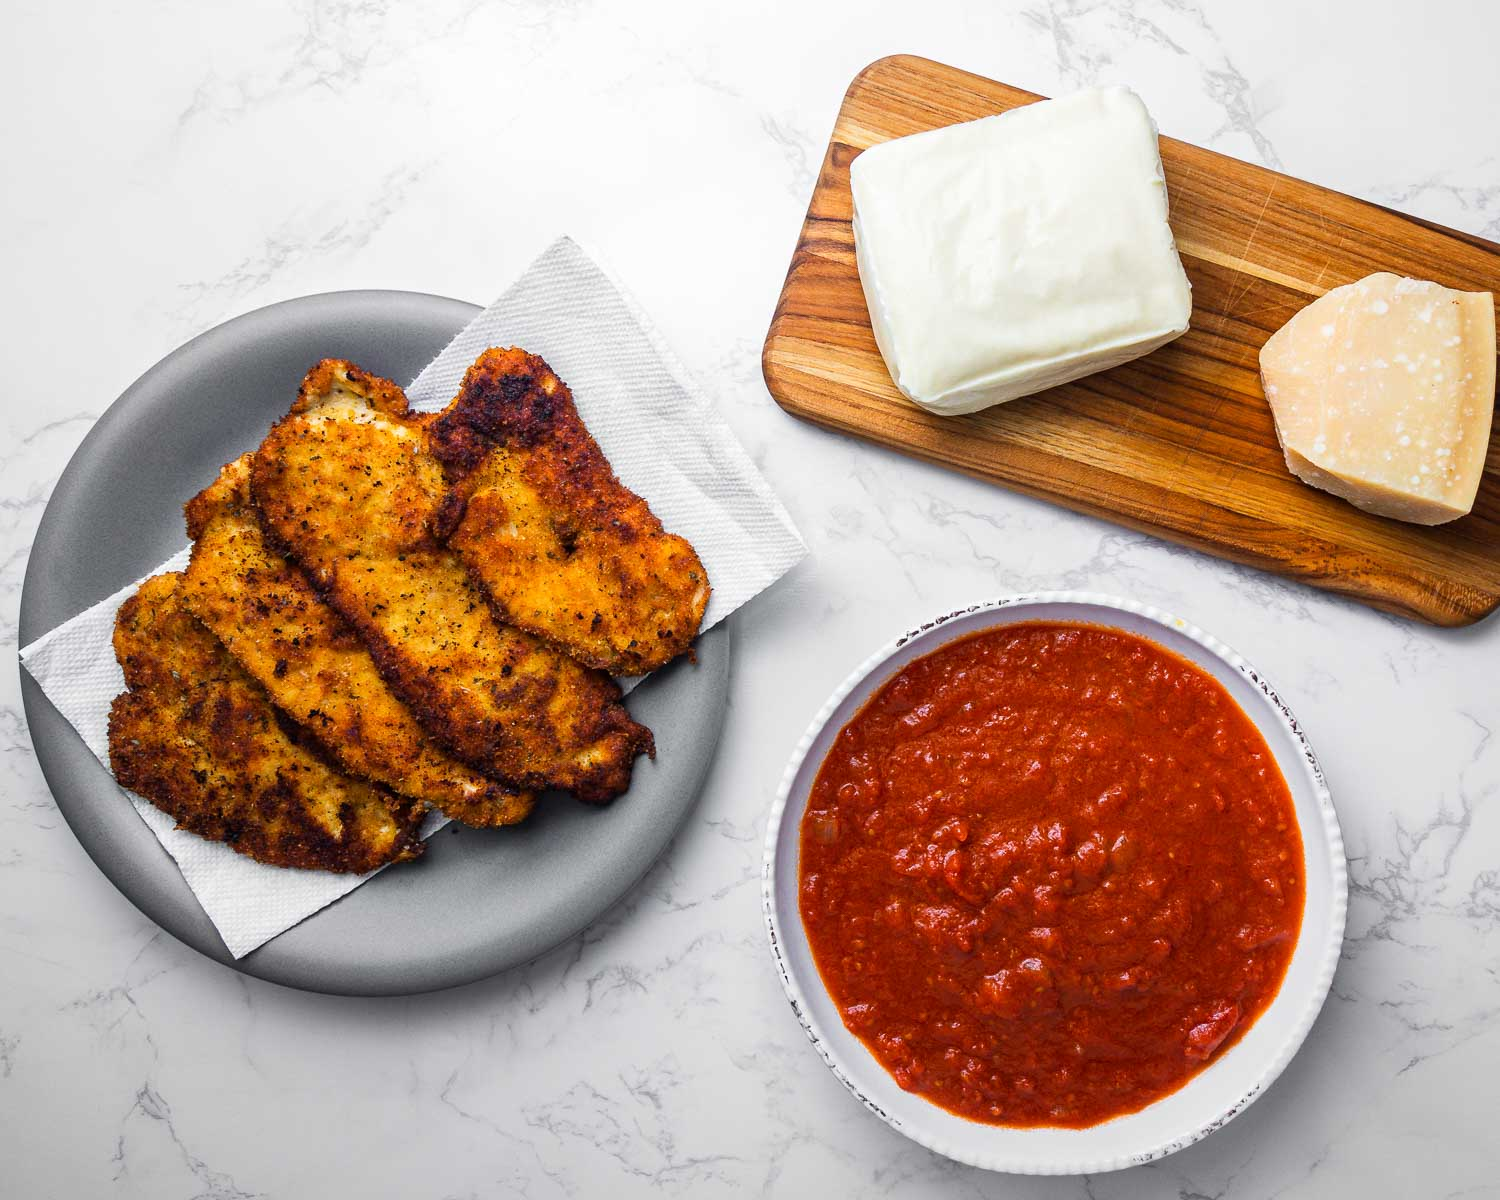 Ingredients shown: chicken cutlets, mozzarella cheese, parmesan cheese, and bowl of sauce.